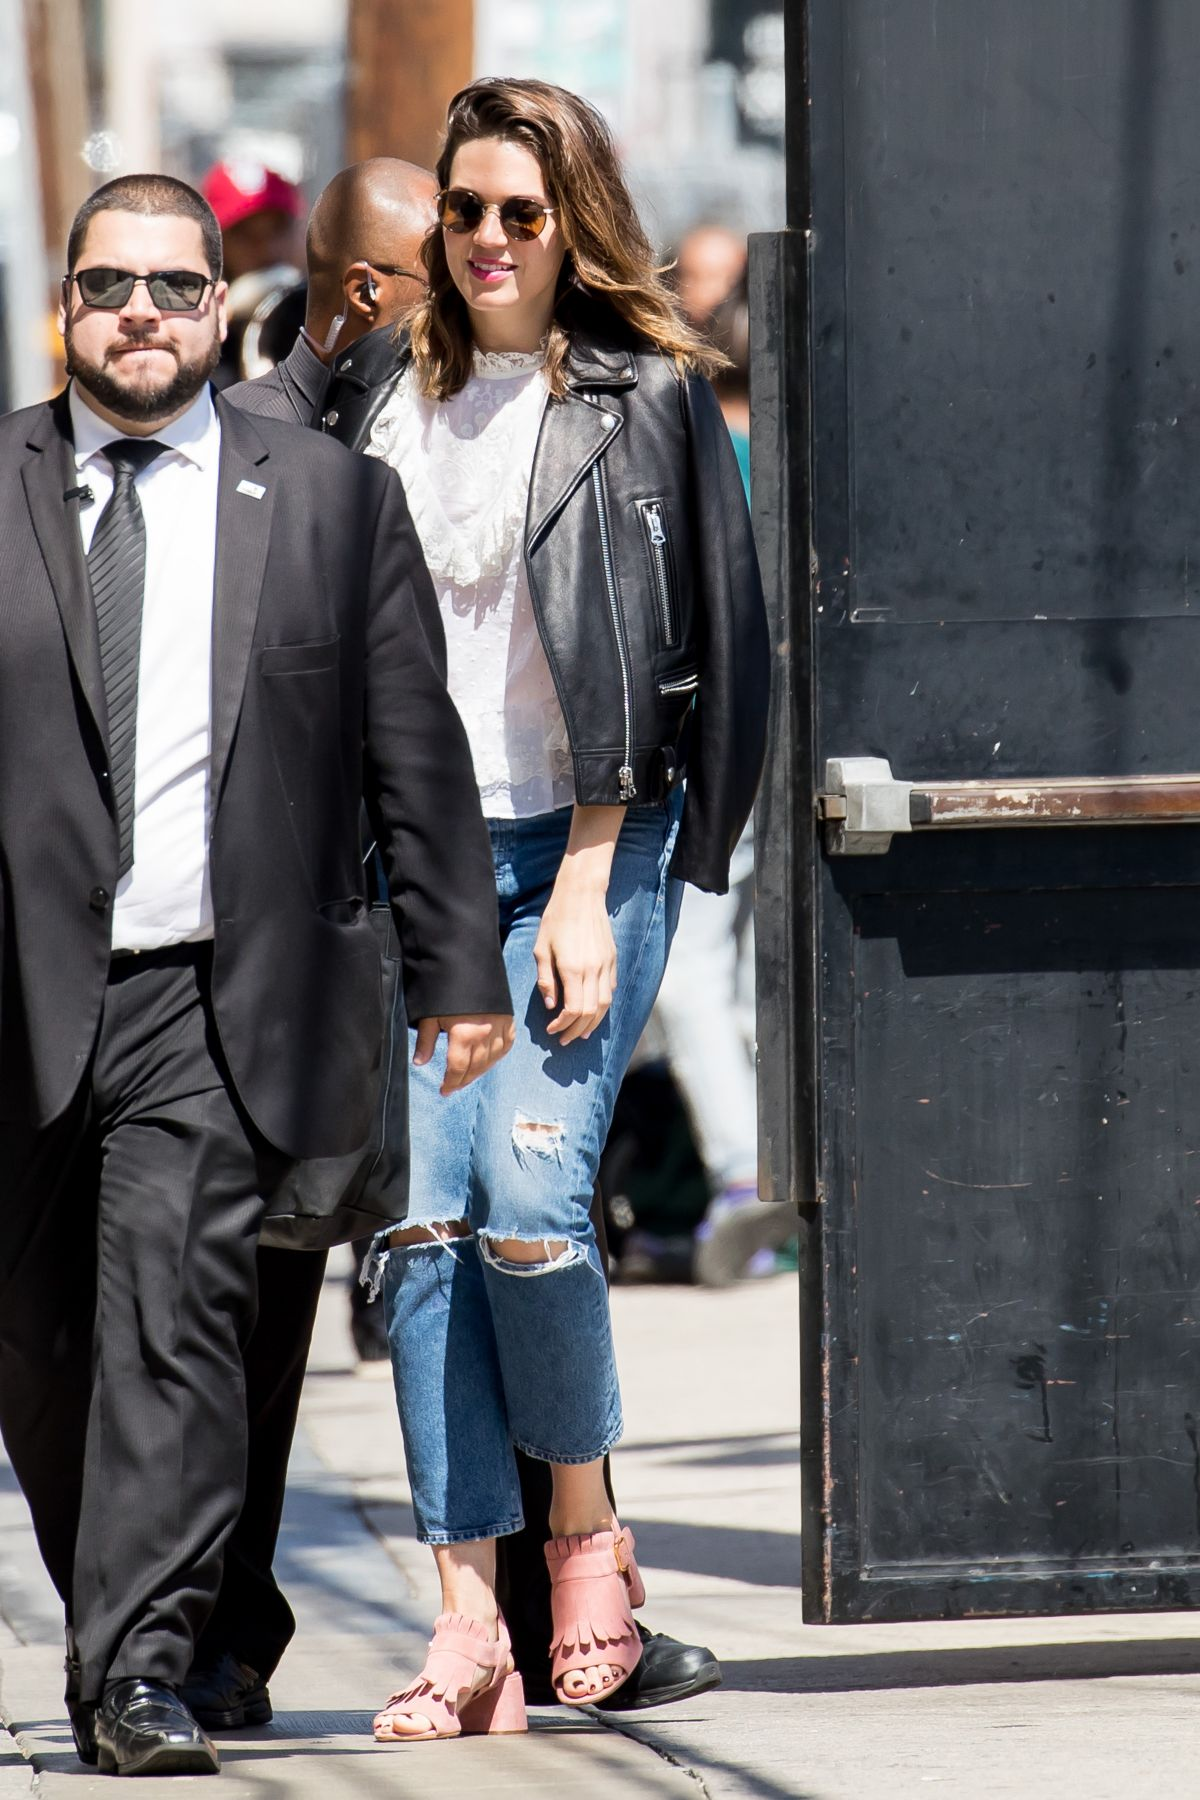 Mandy Moore At 'Jimmy Kimmel Live' in Hollywood   mandy-moore-at-jimmy-kimmel-live-in-hollywood-_7